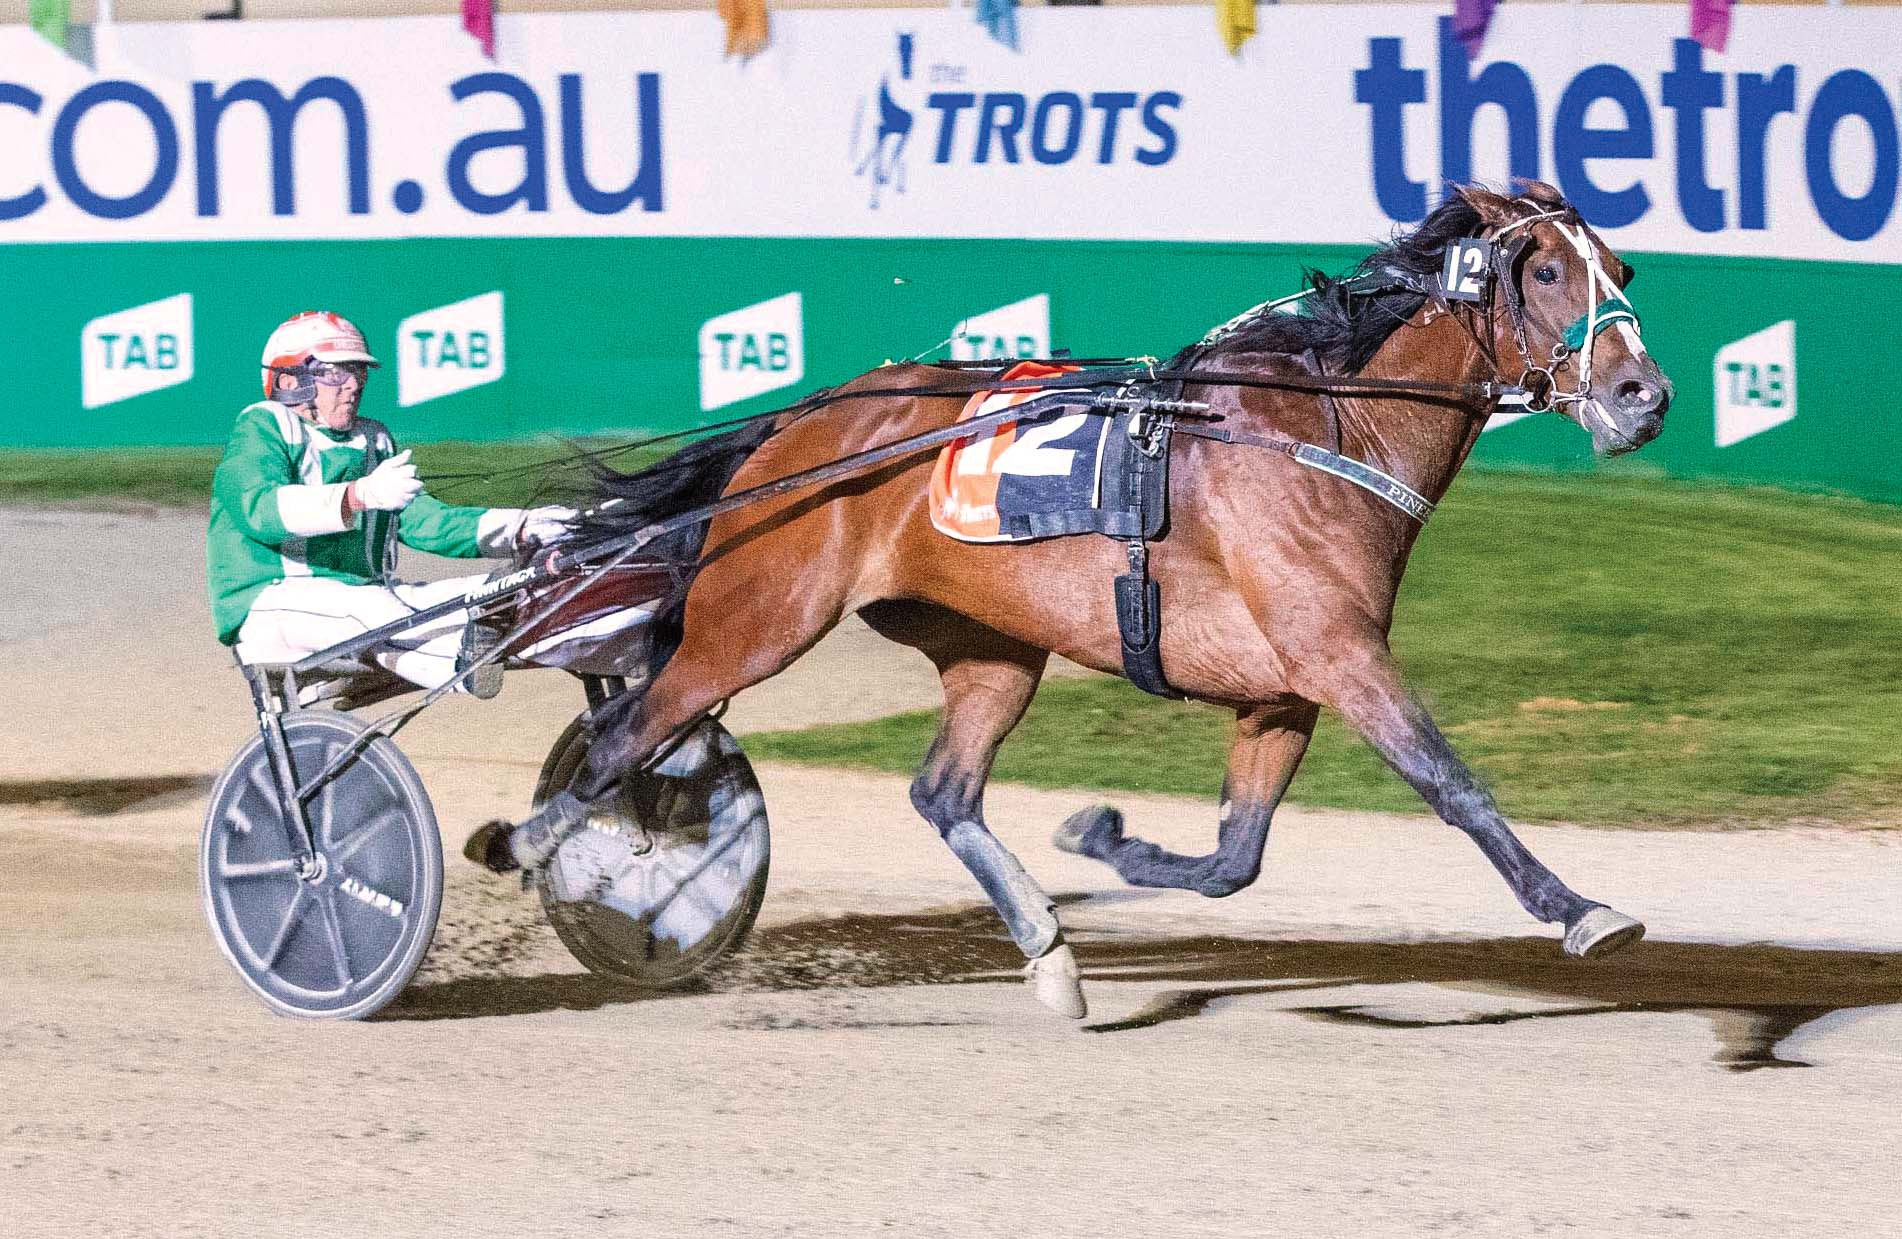 Third time's a charm for top trotter